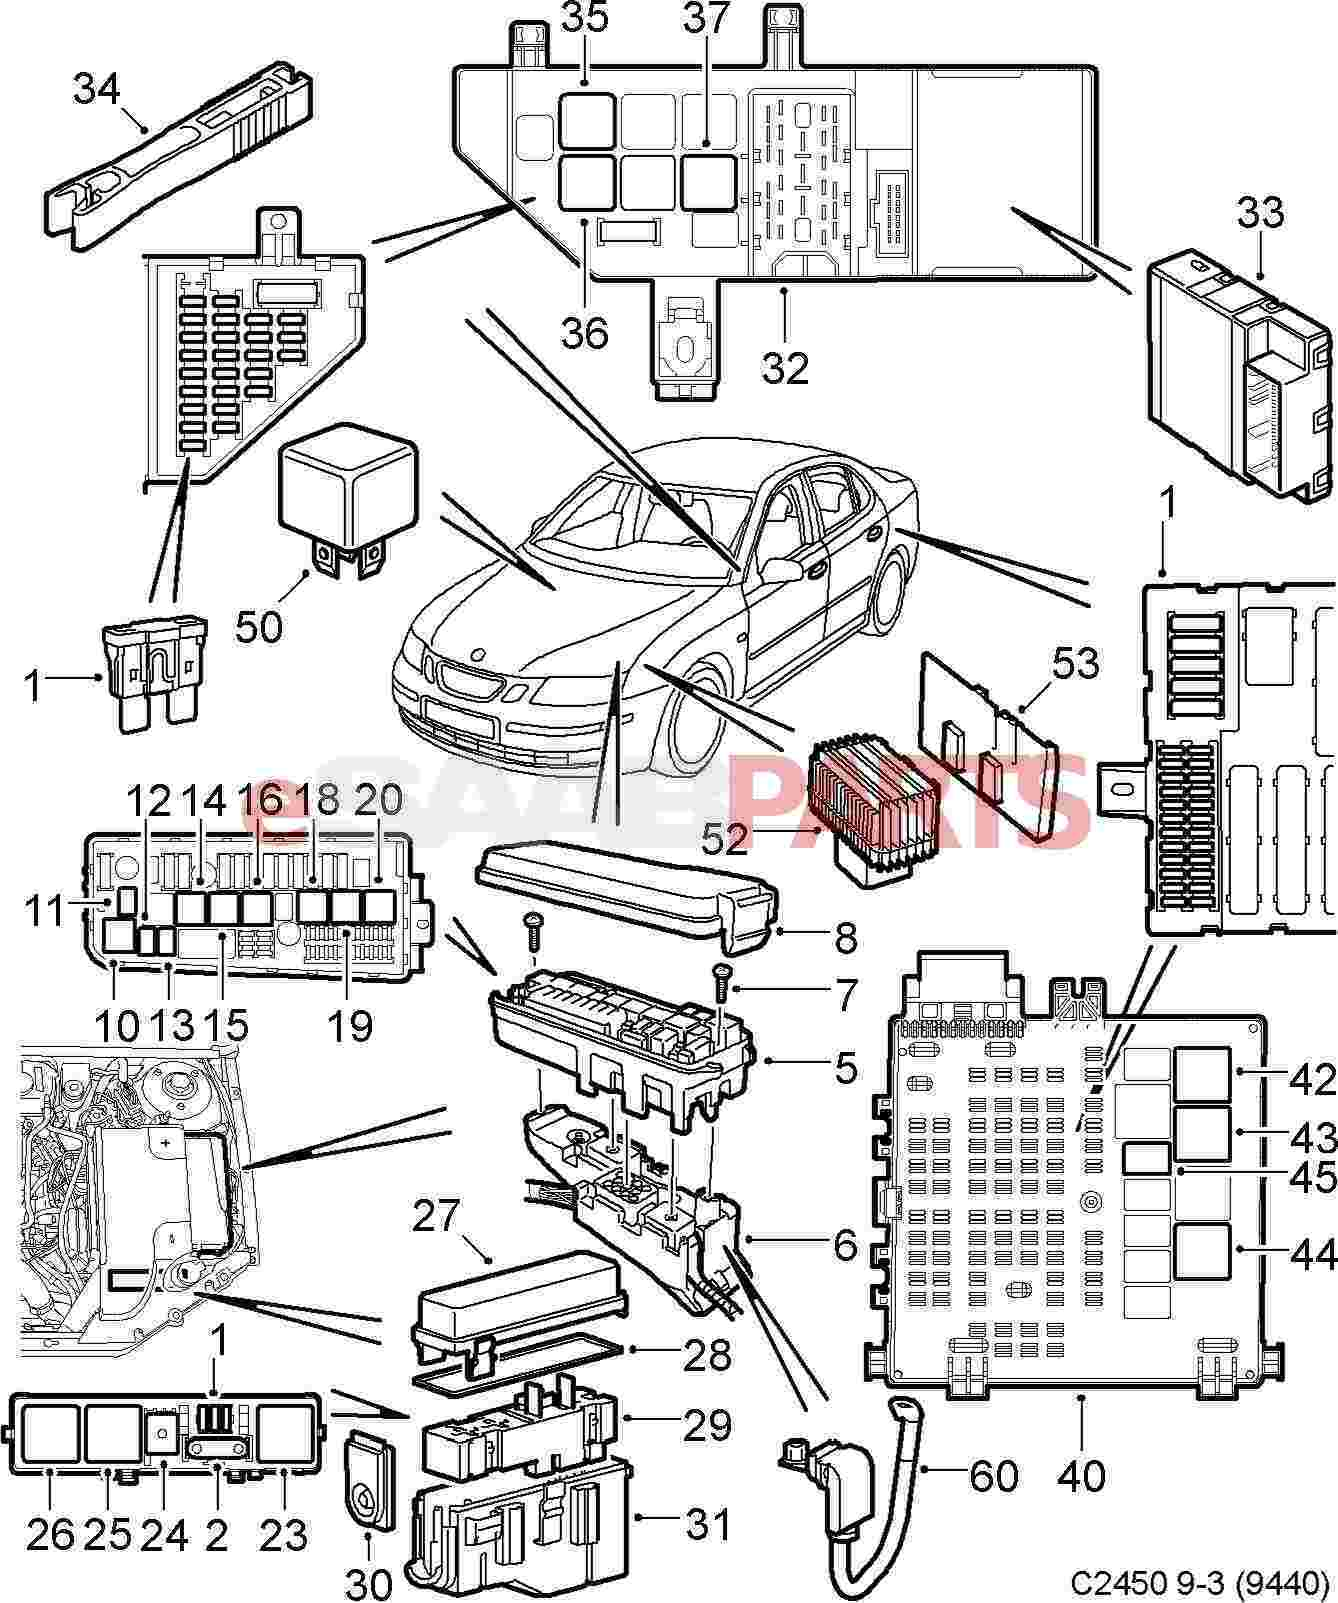 hight resolution of saab 9 3 headlight wiring diagram